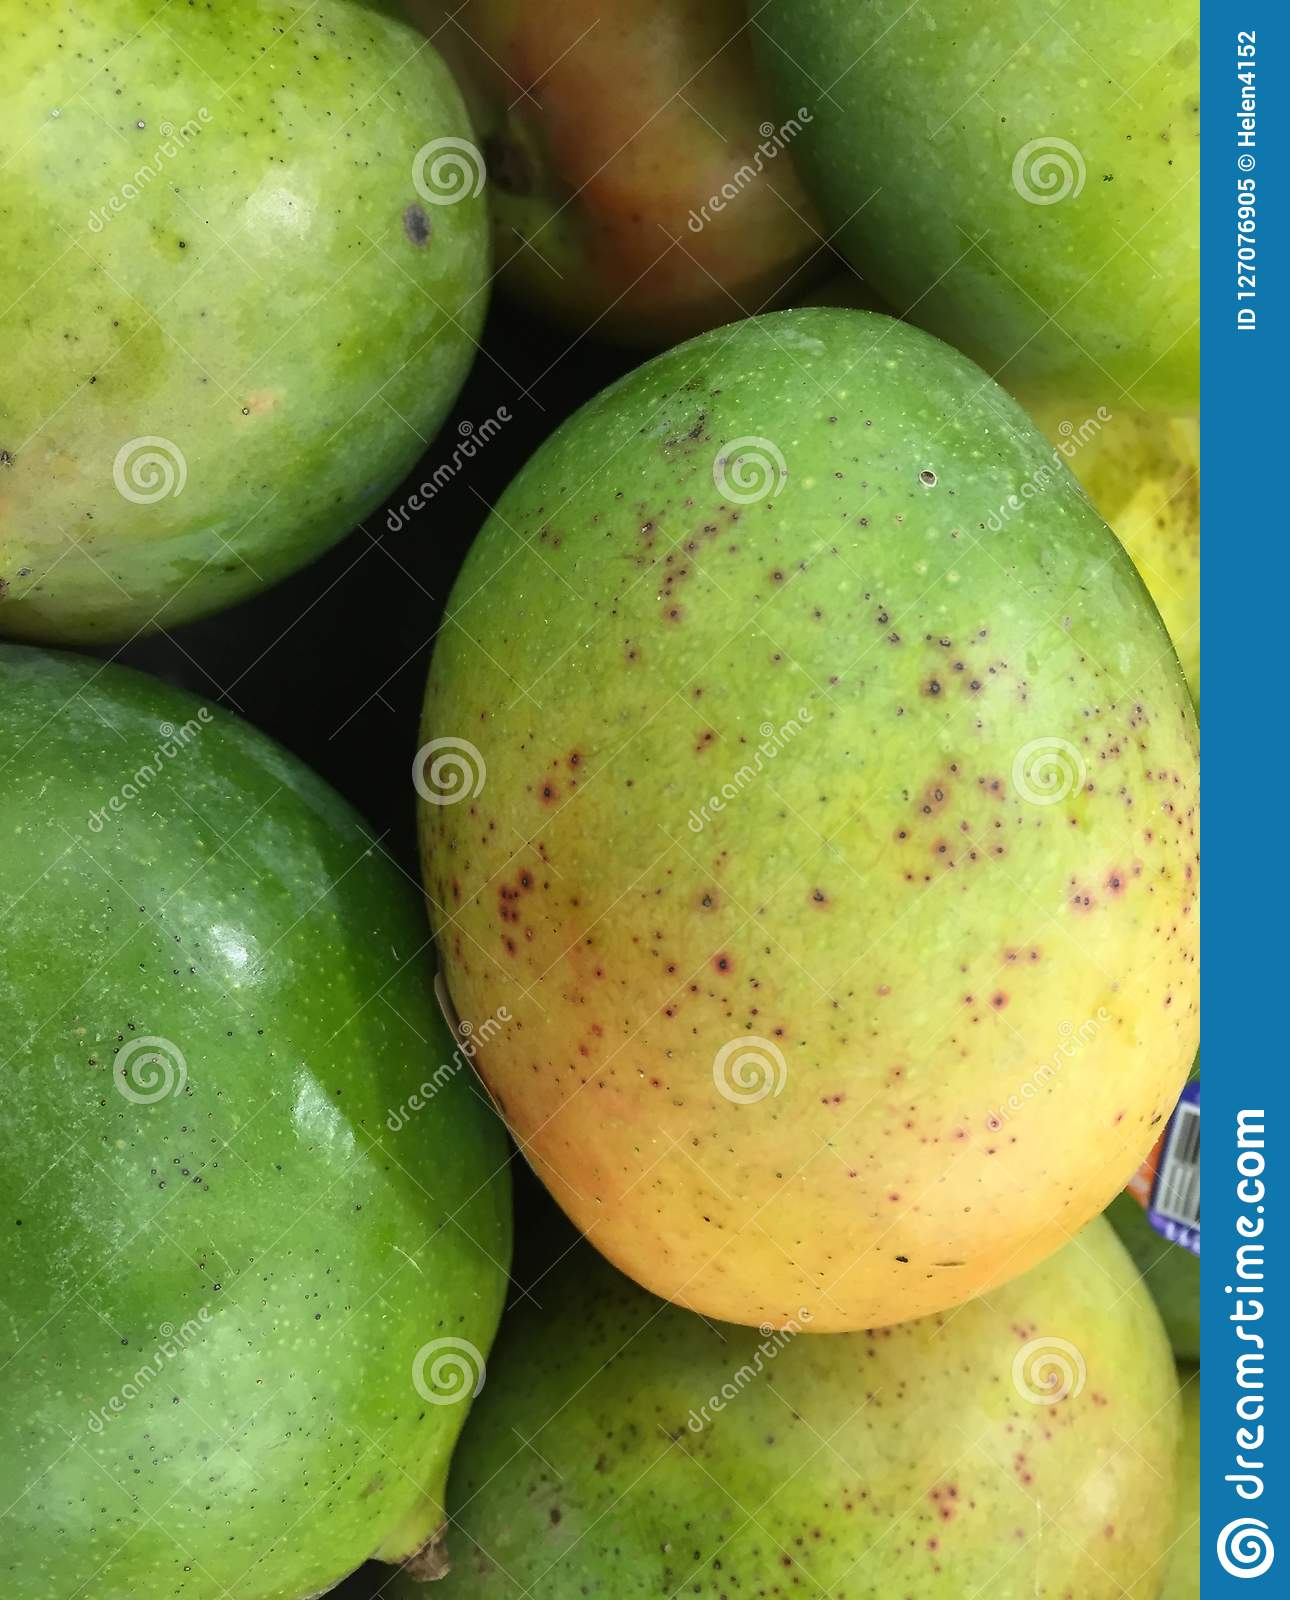 Not quite ripe Mangoes at market